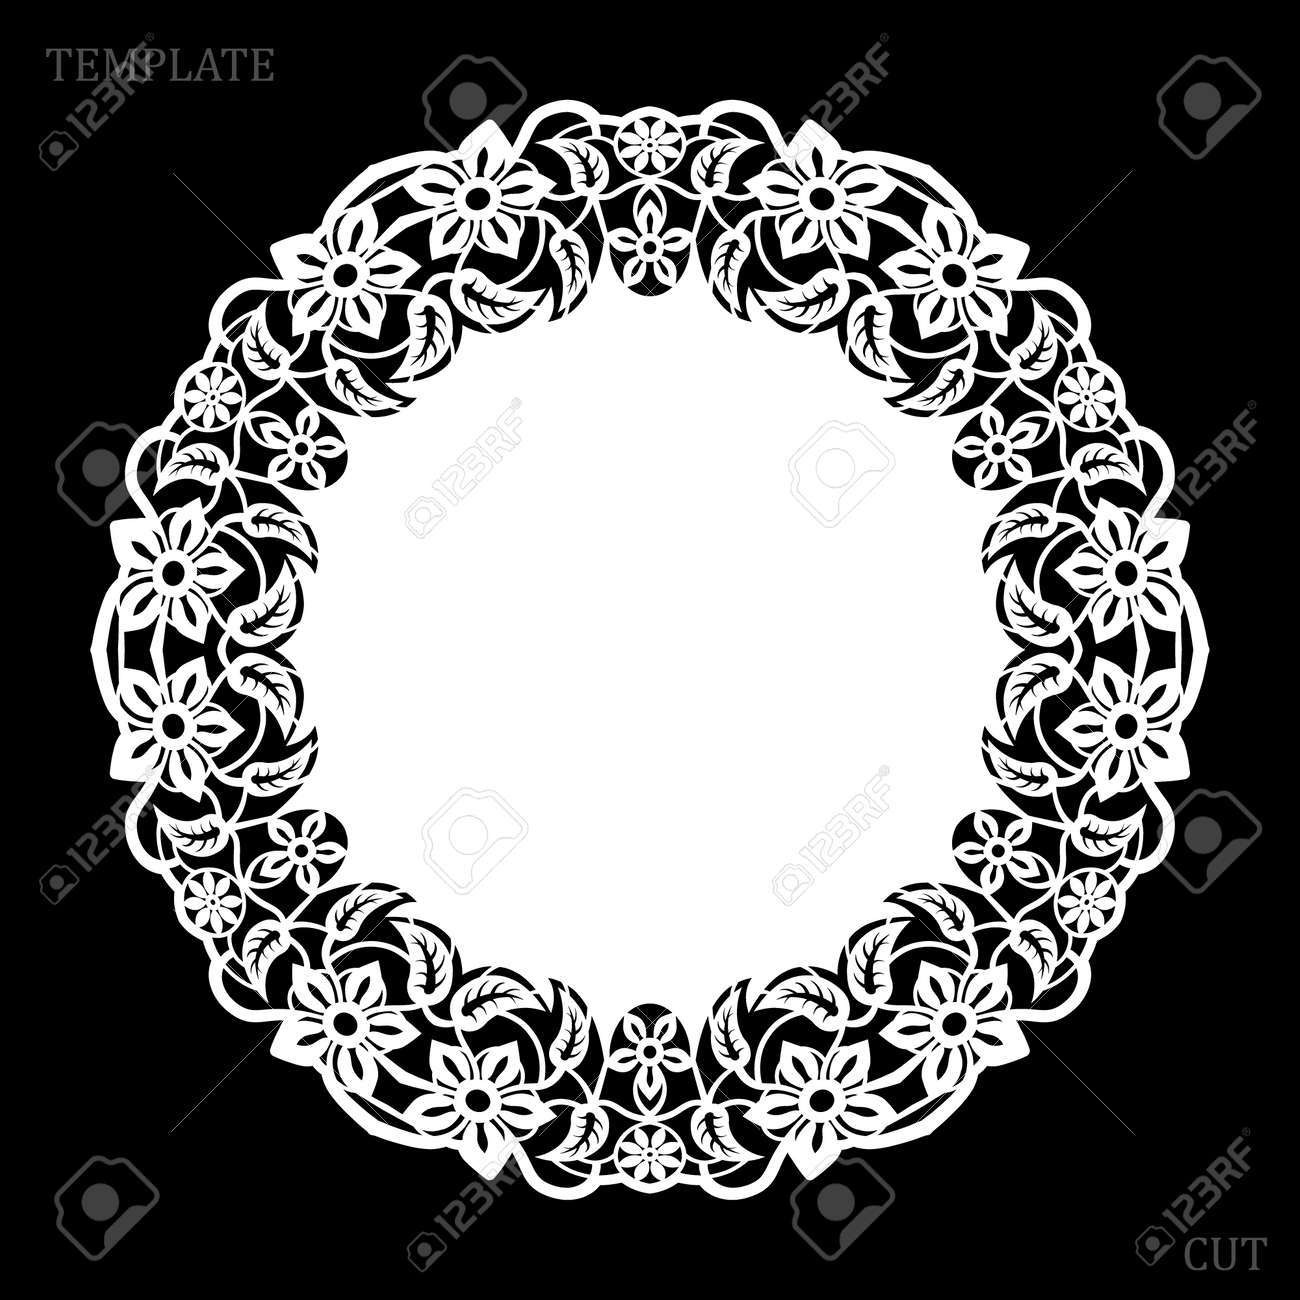 Lace round paper doily, greeting element, laser cut template, doily to decorate the cake, vector illustrations. - 120537086